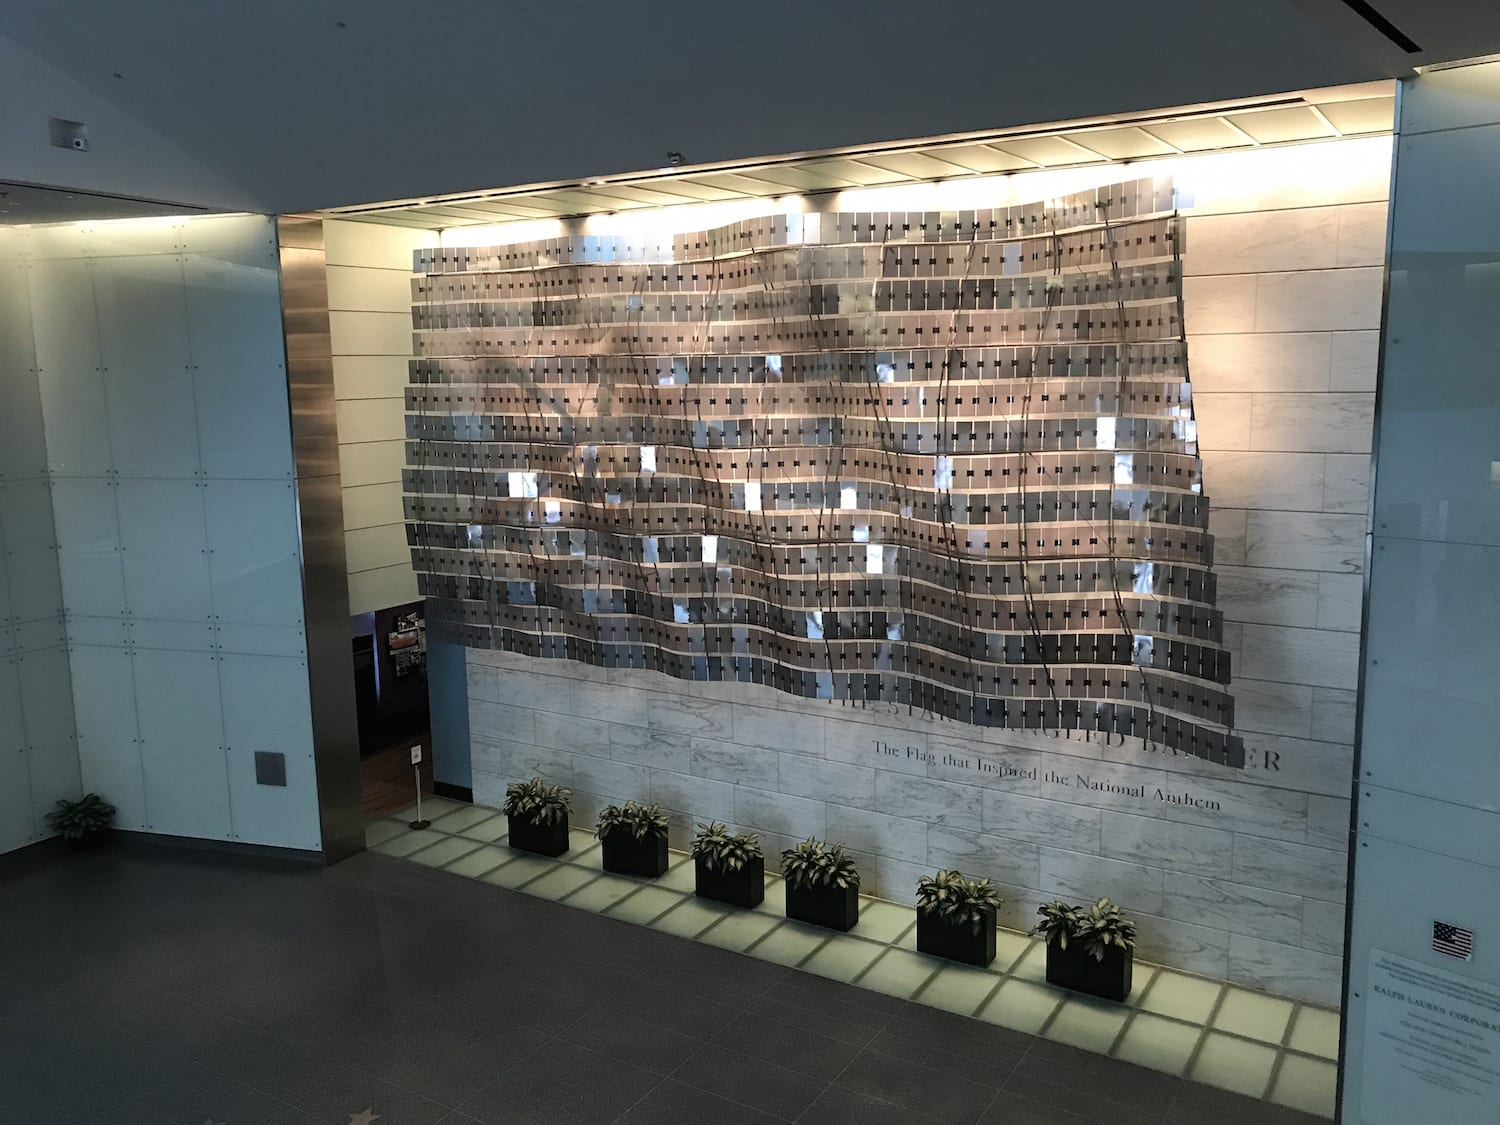 The Star Spangled Banner Exhibit